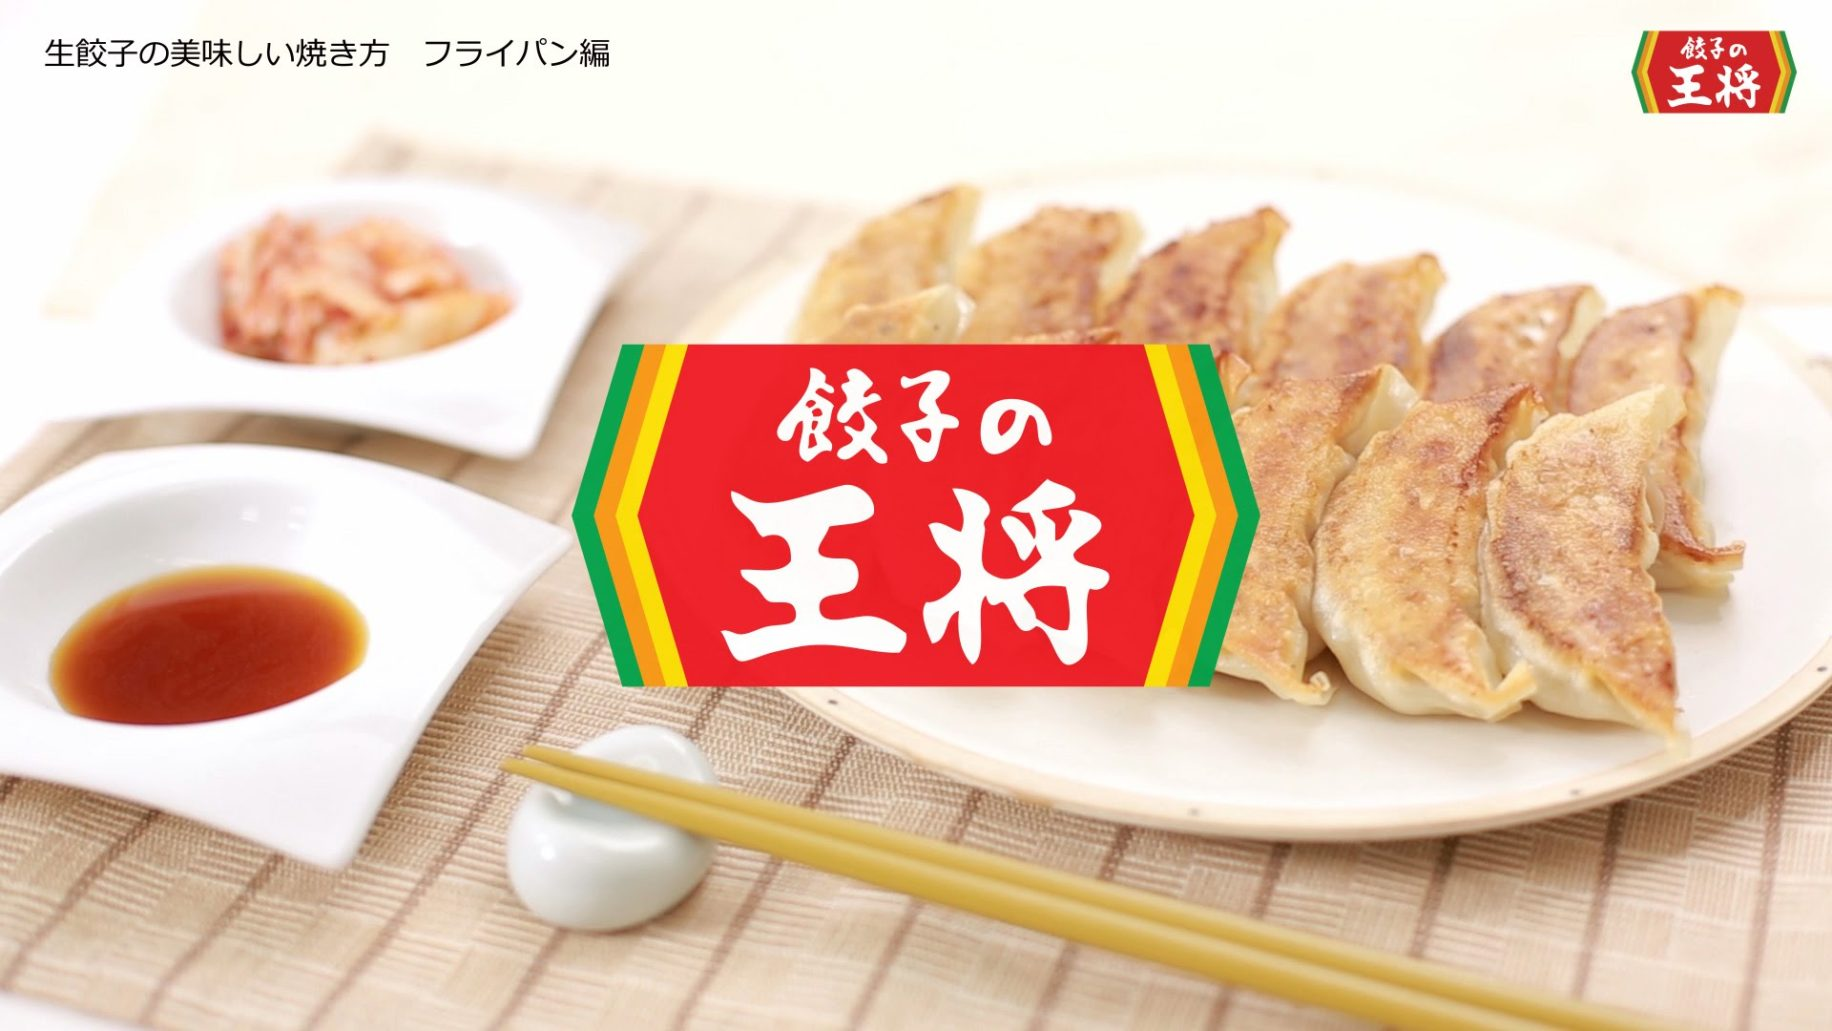 The Gyoza no Ohsho chain serves dumpling and noodle dishes